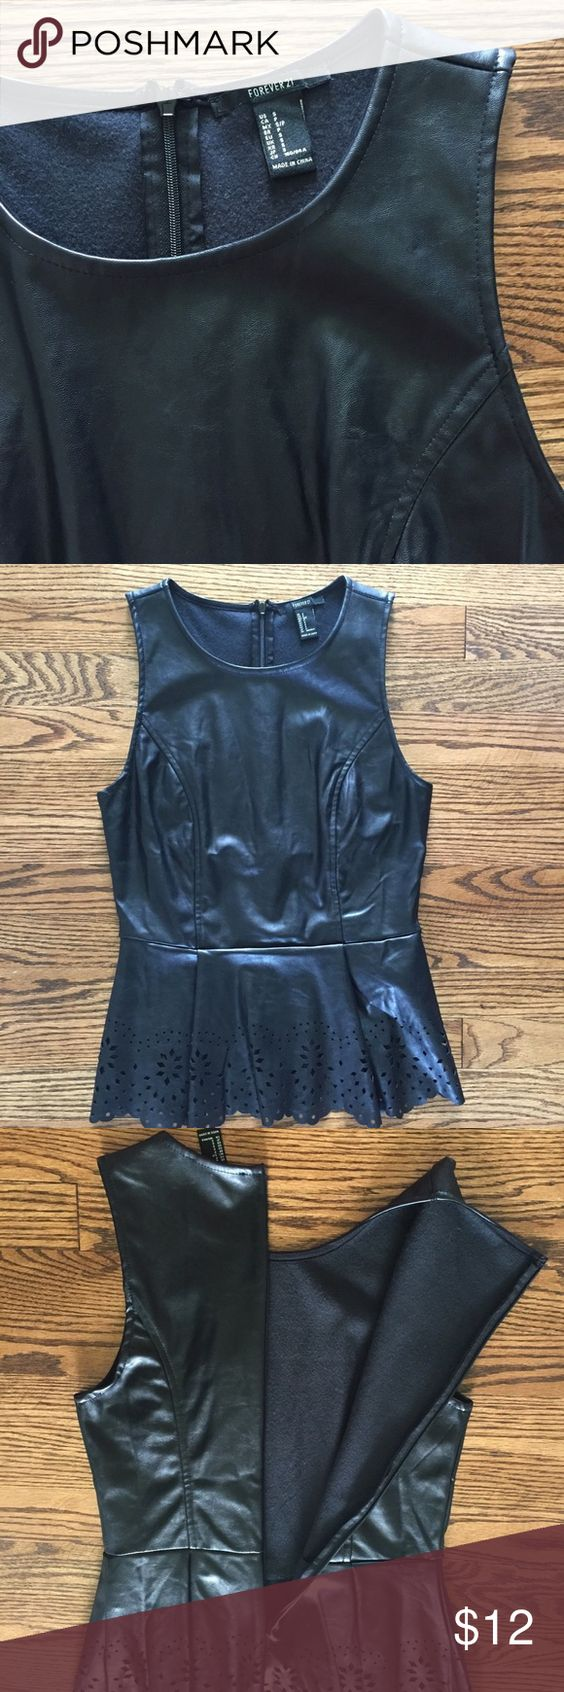 black peplum top black peplum top | faux leather | bottom eyelet detail | back zipper | never worn and in perfect condition! NWOT! Forever 21 Tops